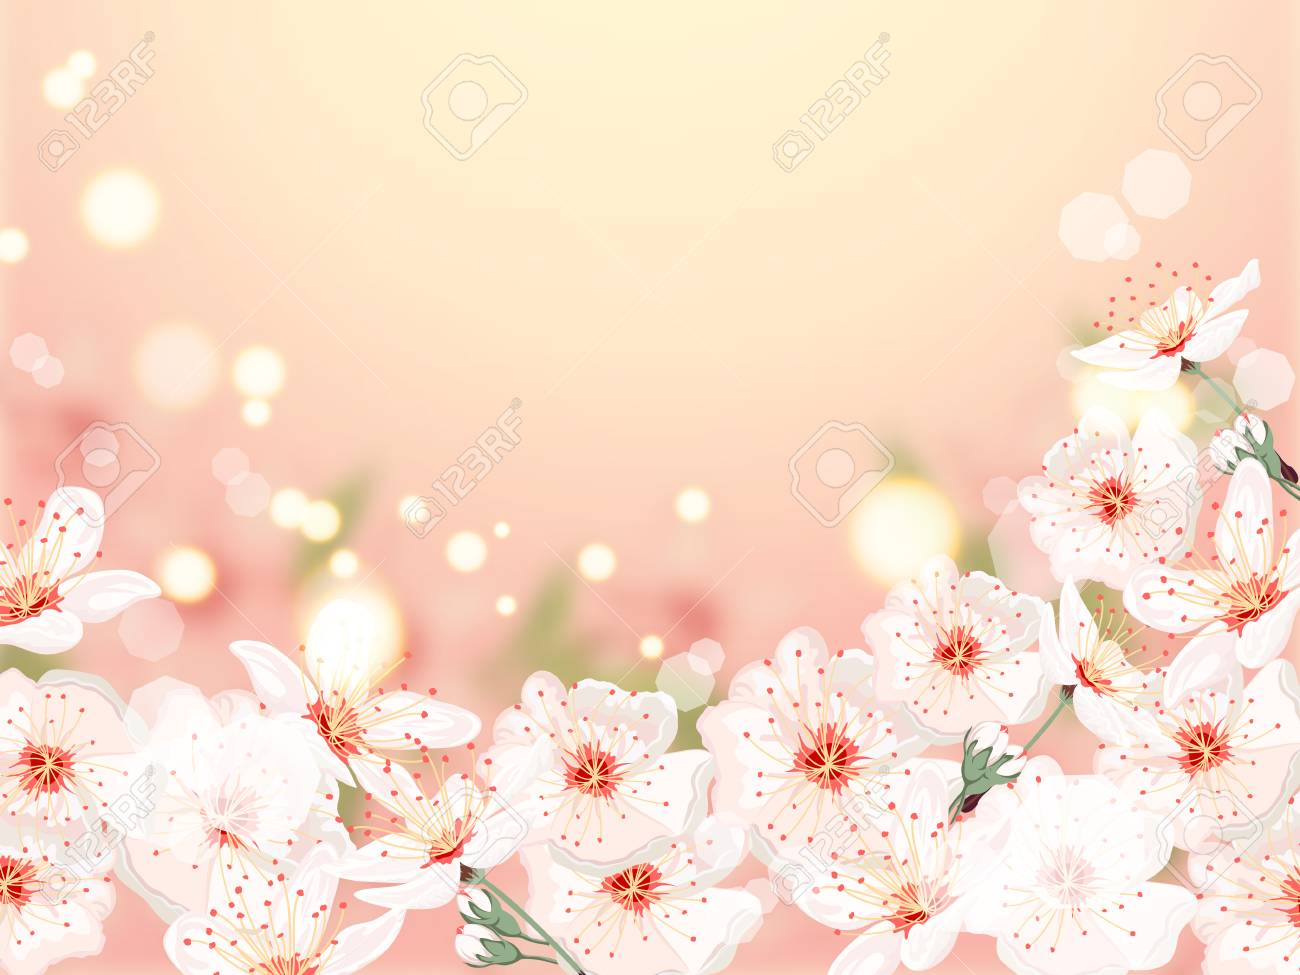 Bunch Of White Flowers On Peach Light Background Vector Banner